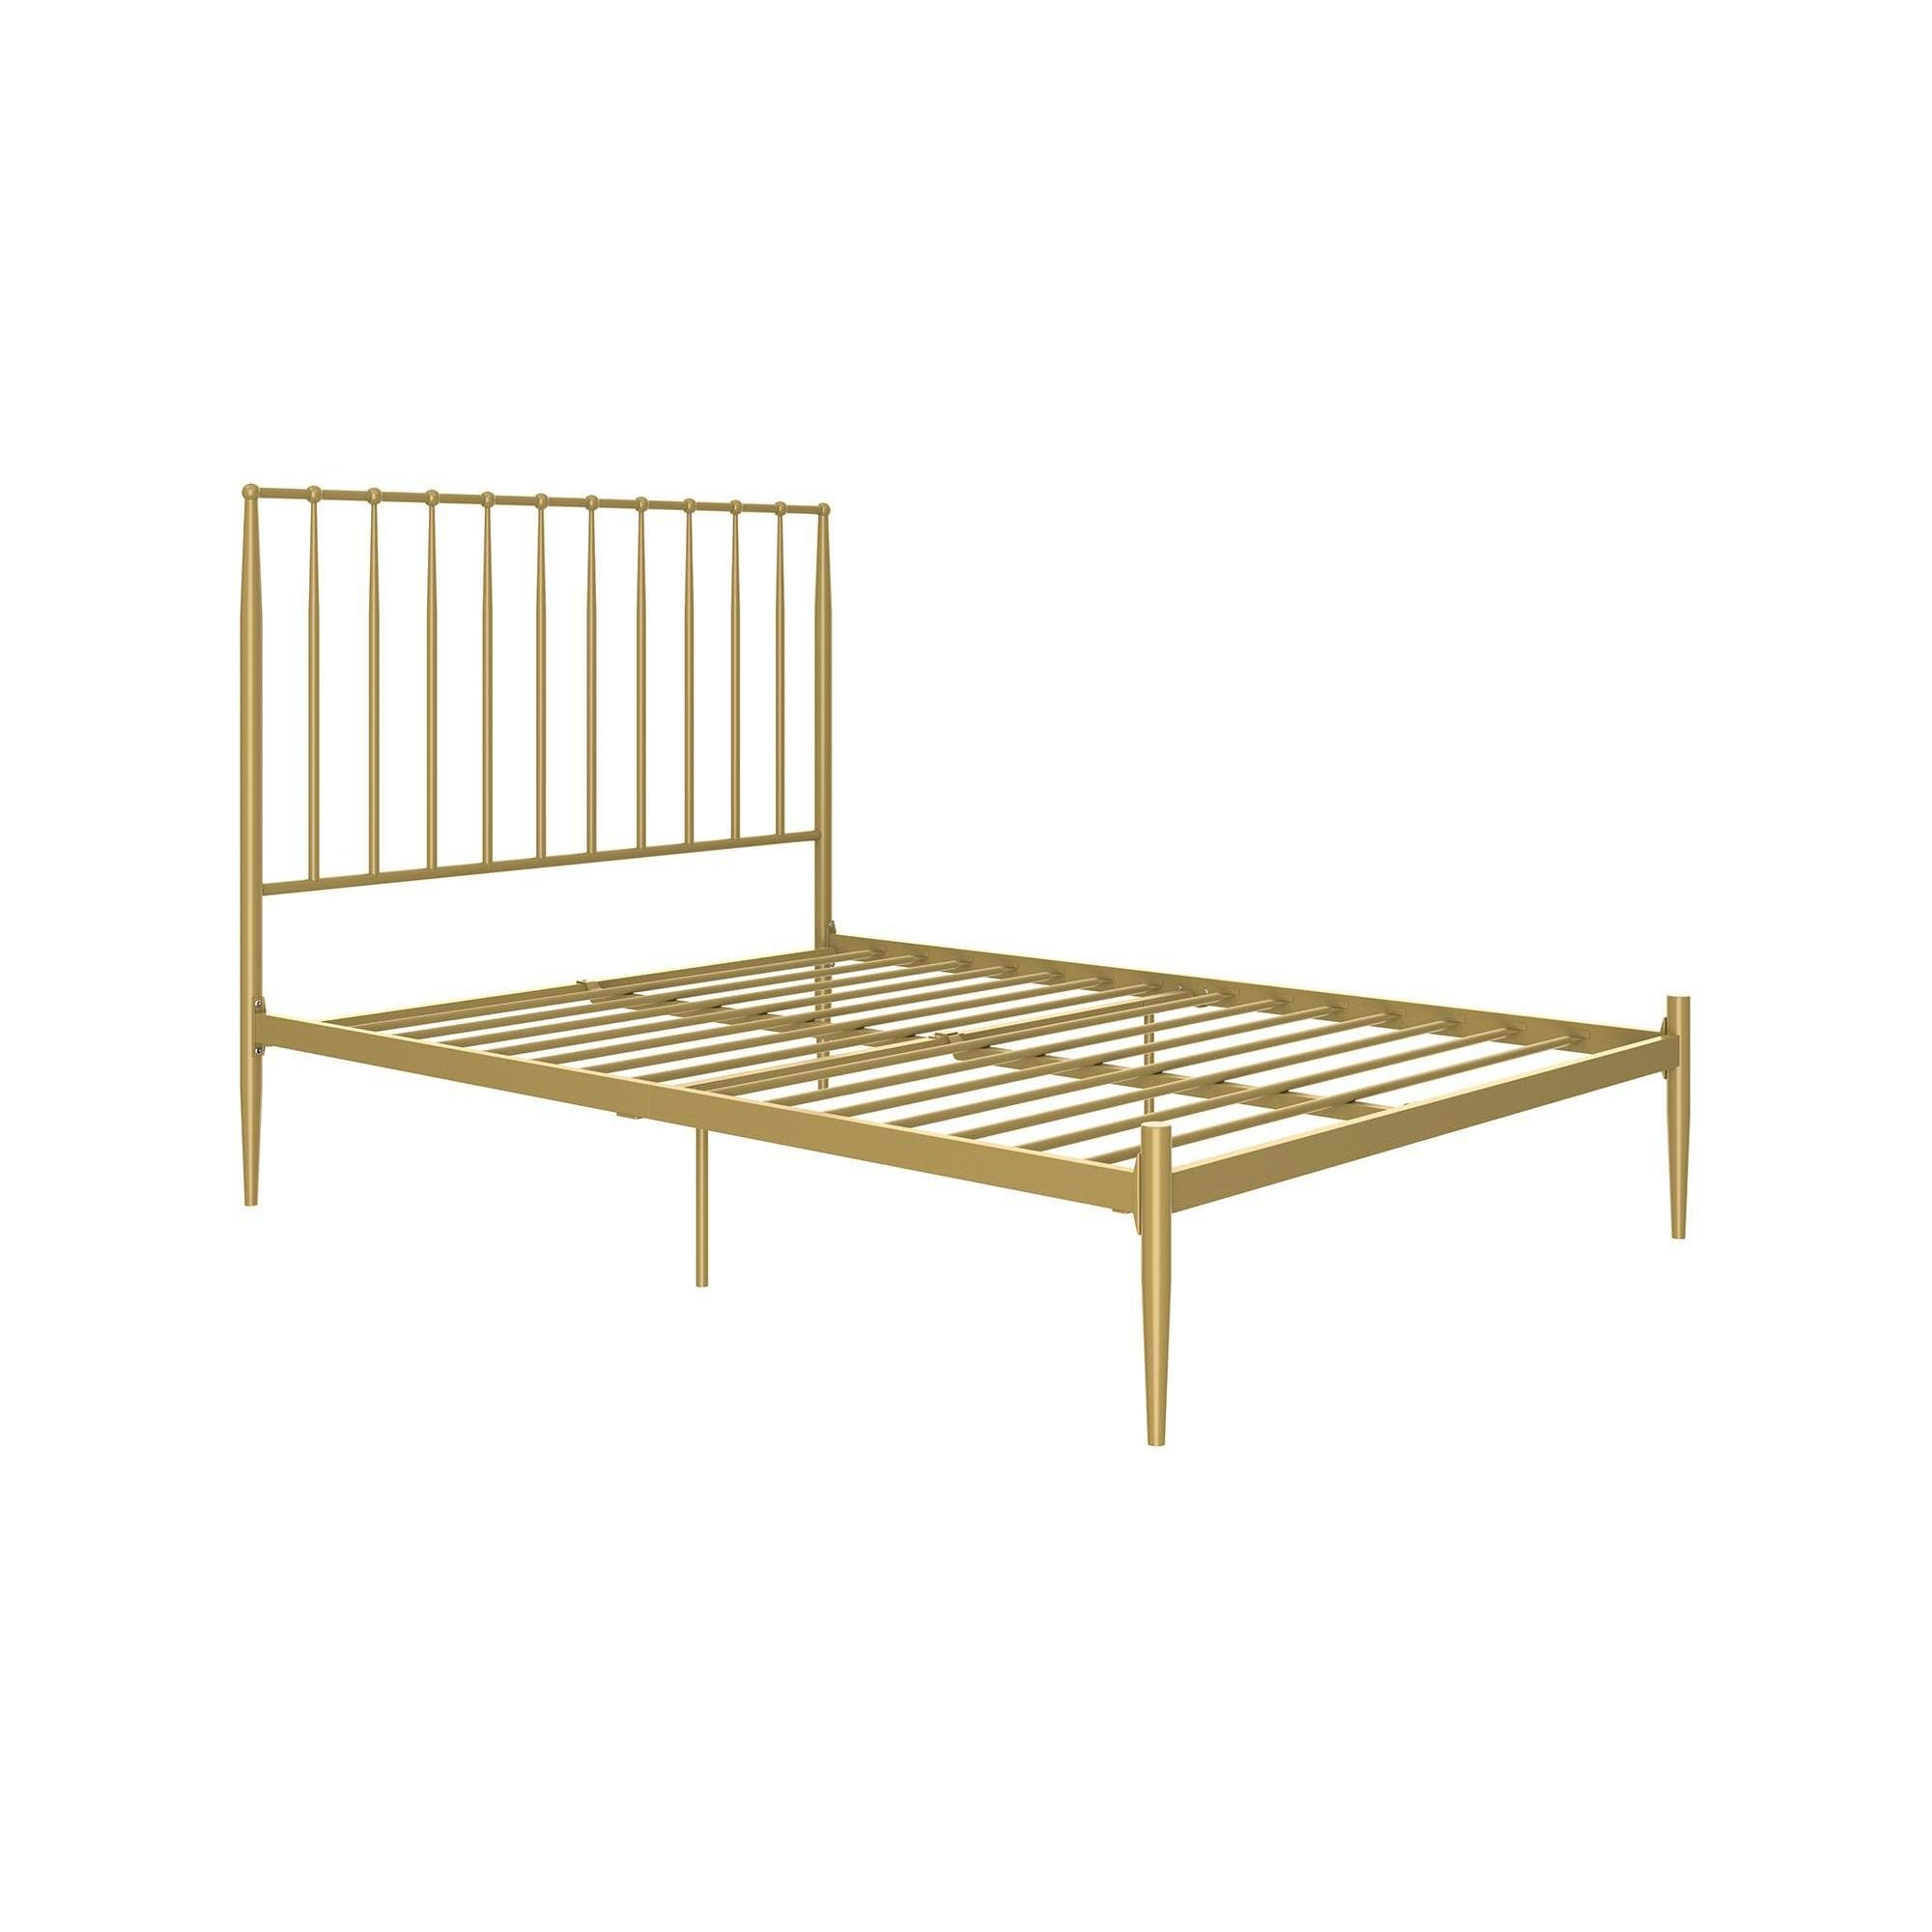 dhp giulia modern metal bed free shipping today overstockcom 24250156 - Modern Metal Bed Frame